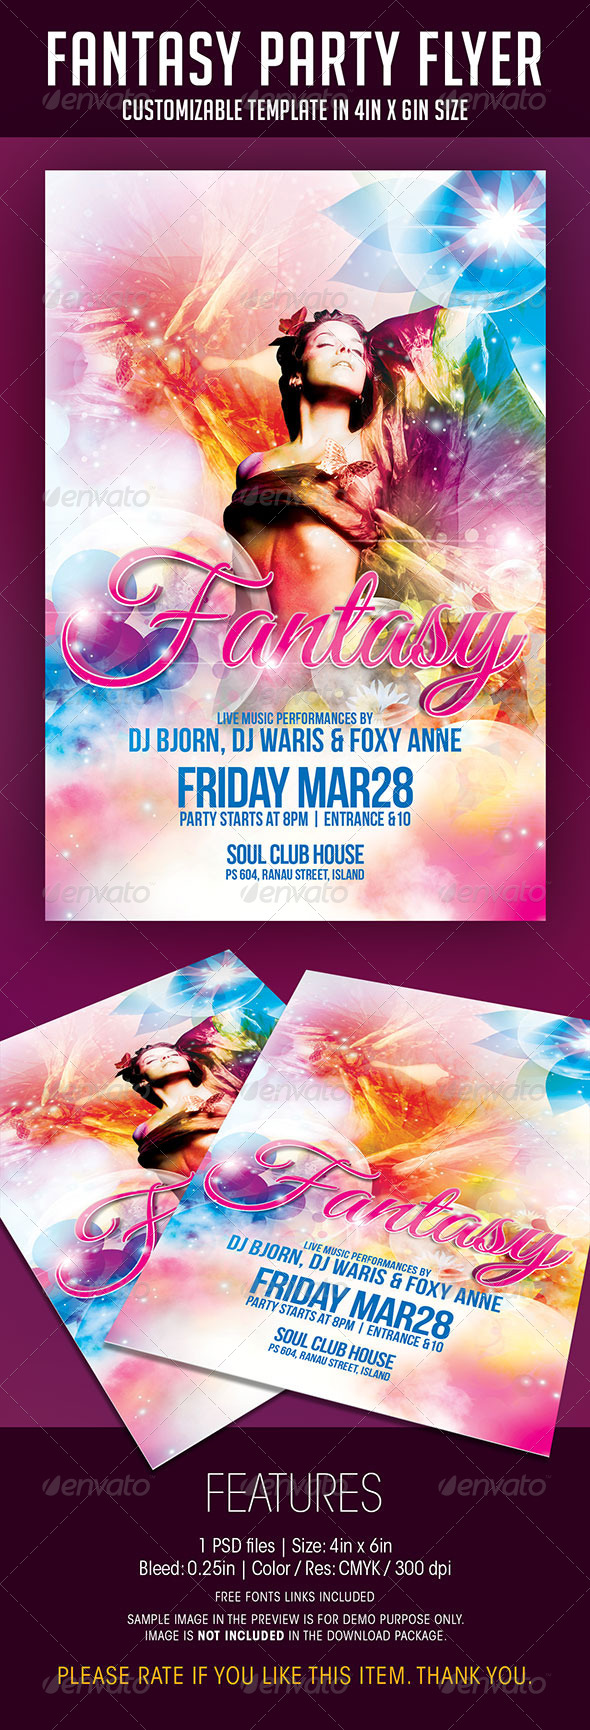 Fantasy Party Flyer - Clubs & Parties Events